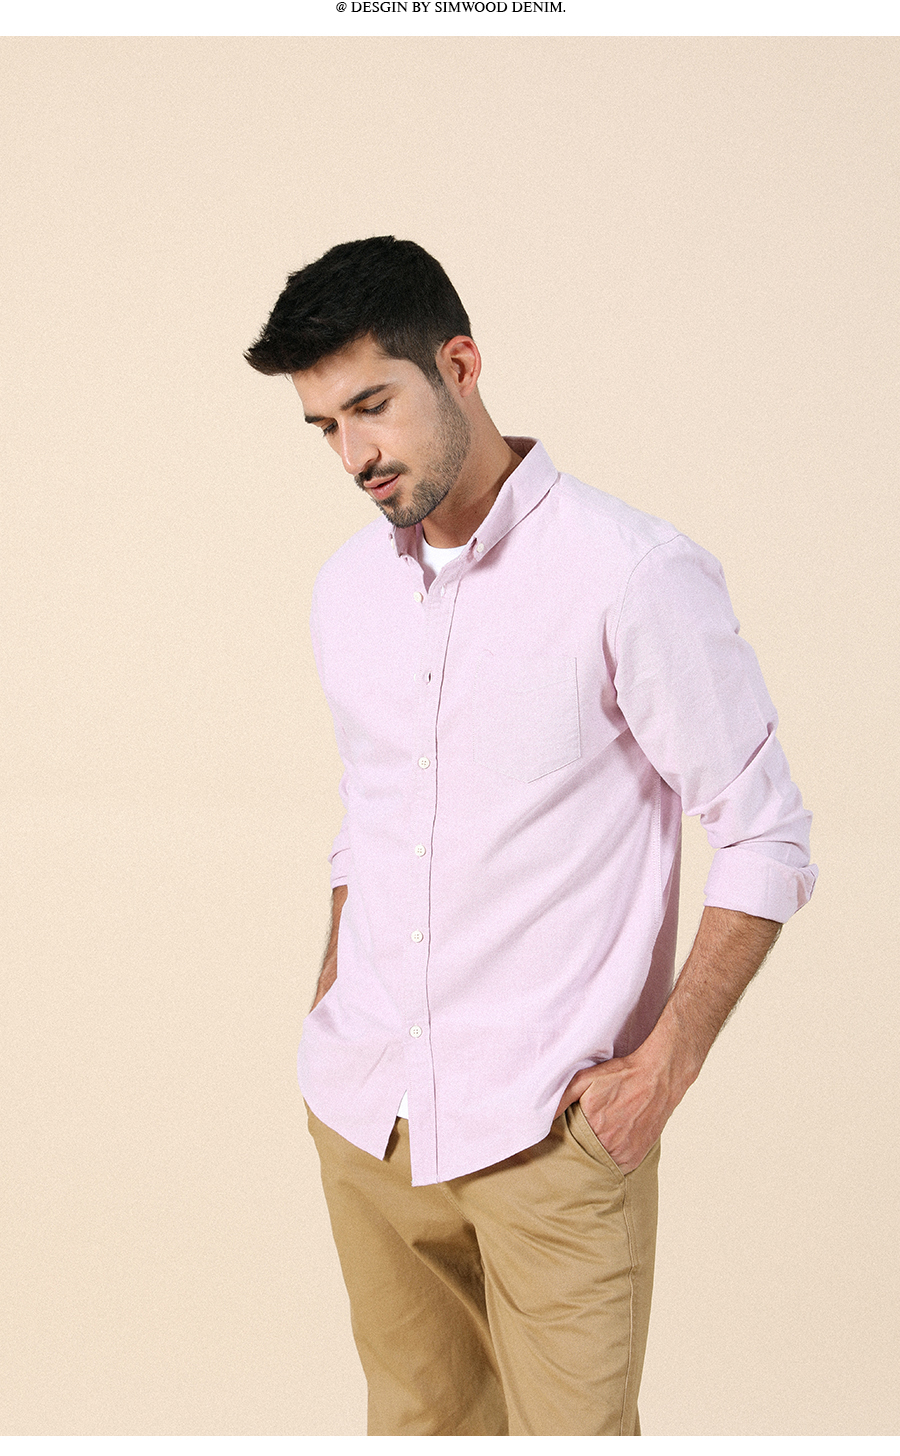 H1a3a2939186d449787f9a5e02aa474bf6 - SIMWOOD 21s/2 oxford shirts men classical casual shirt single chest pockets 100% cotton spring new brand clothing SJ110377